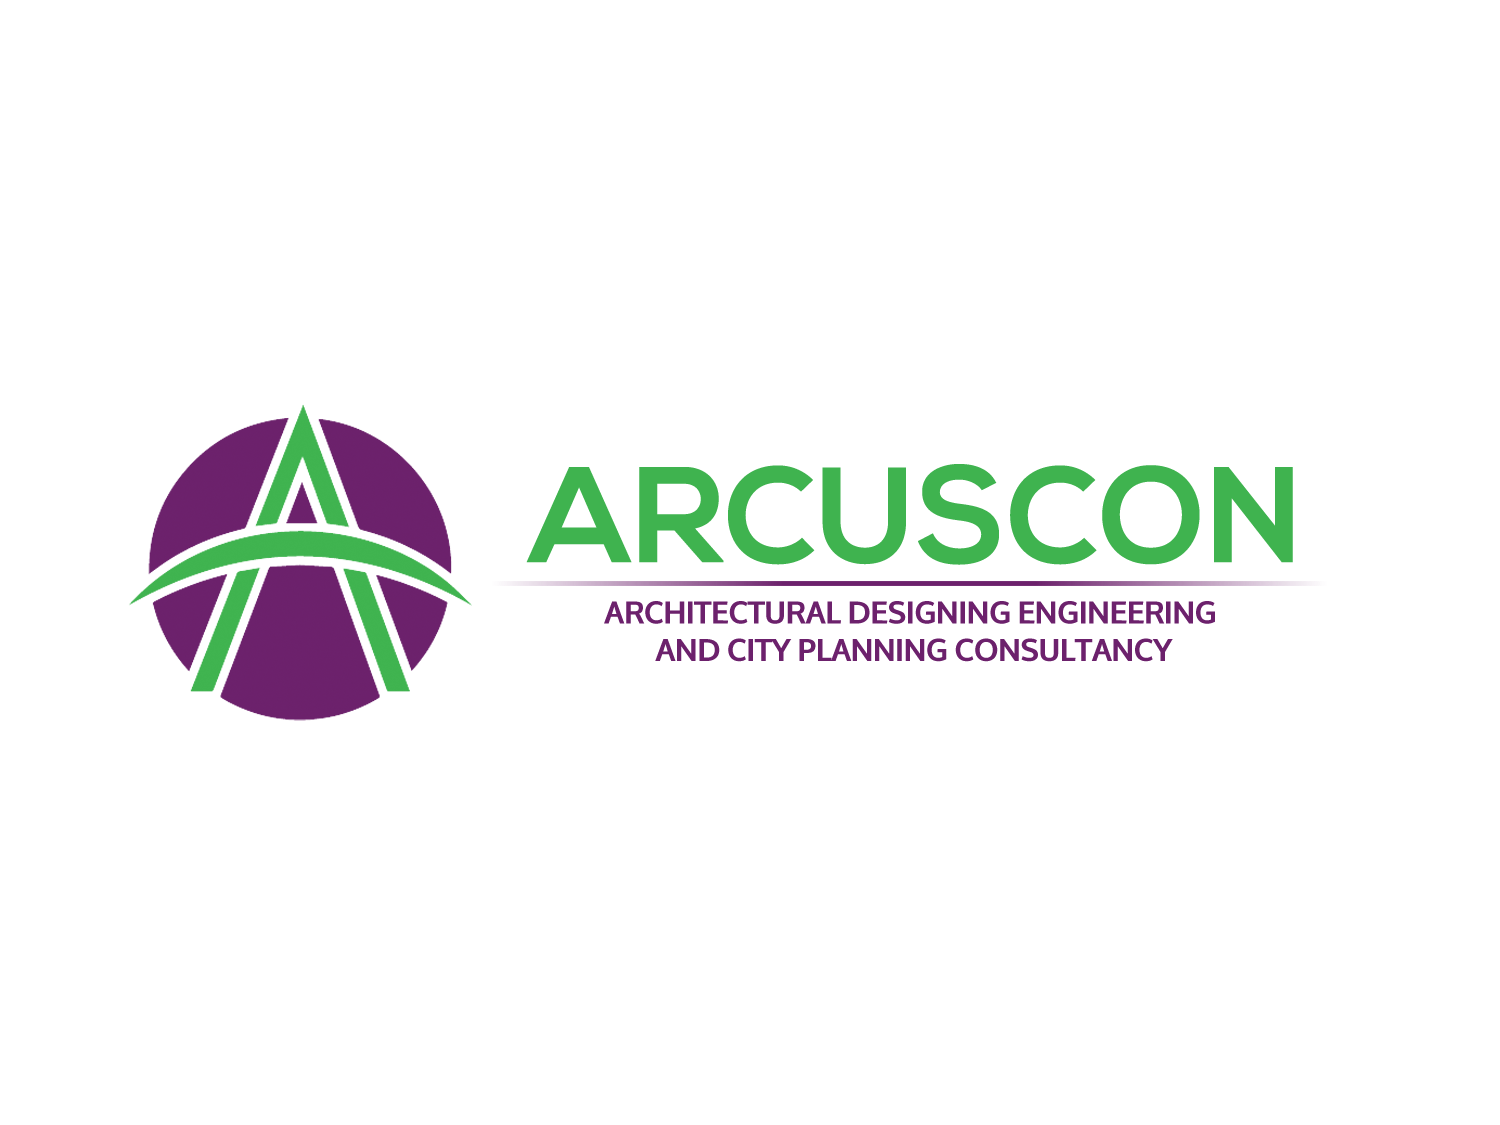 Arcuscon Architecture & Design Company in Dubai